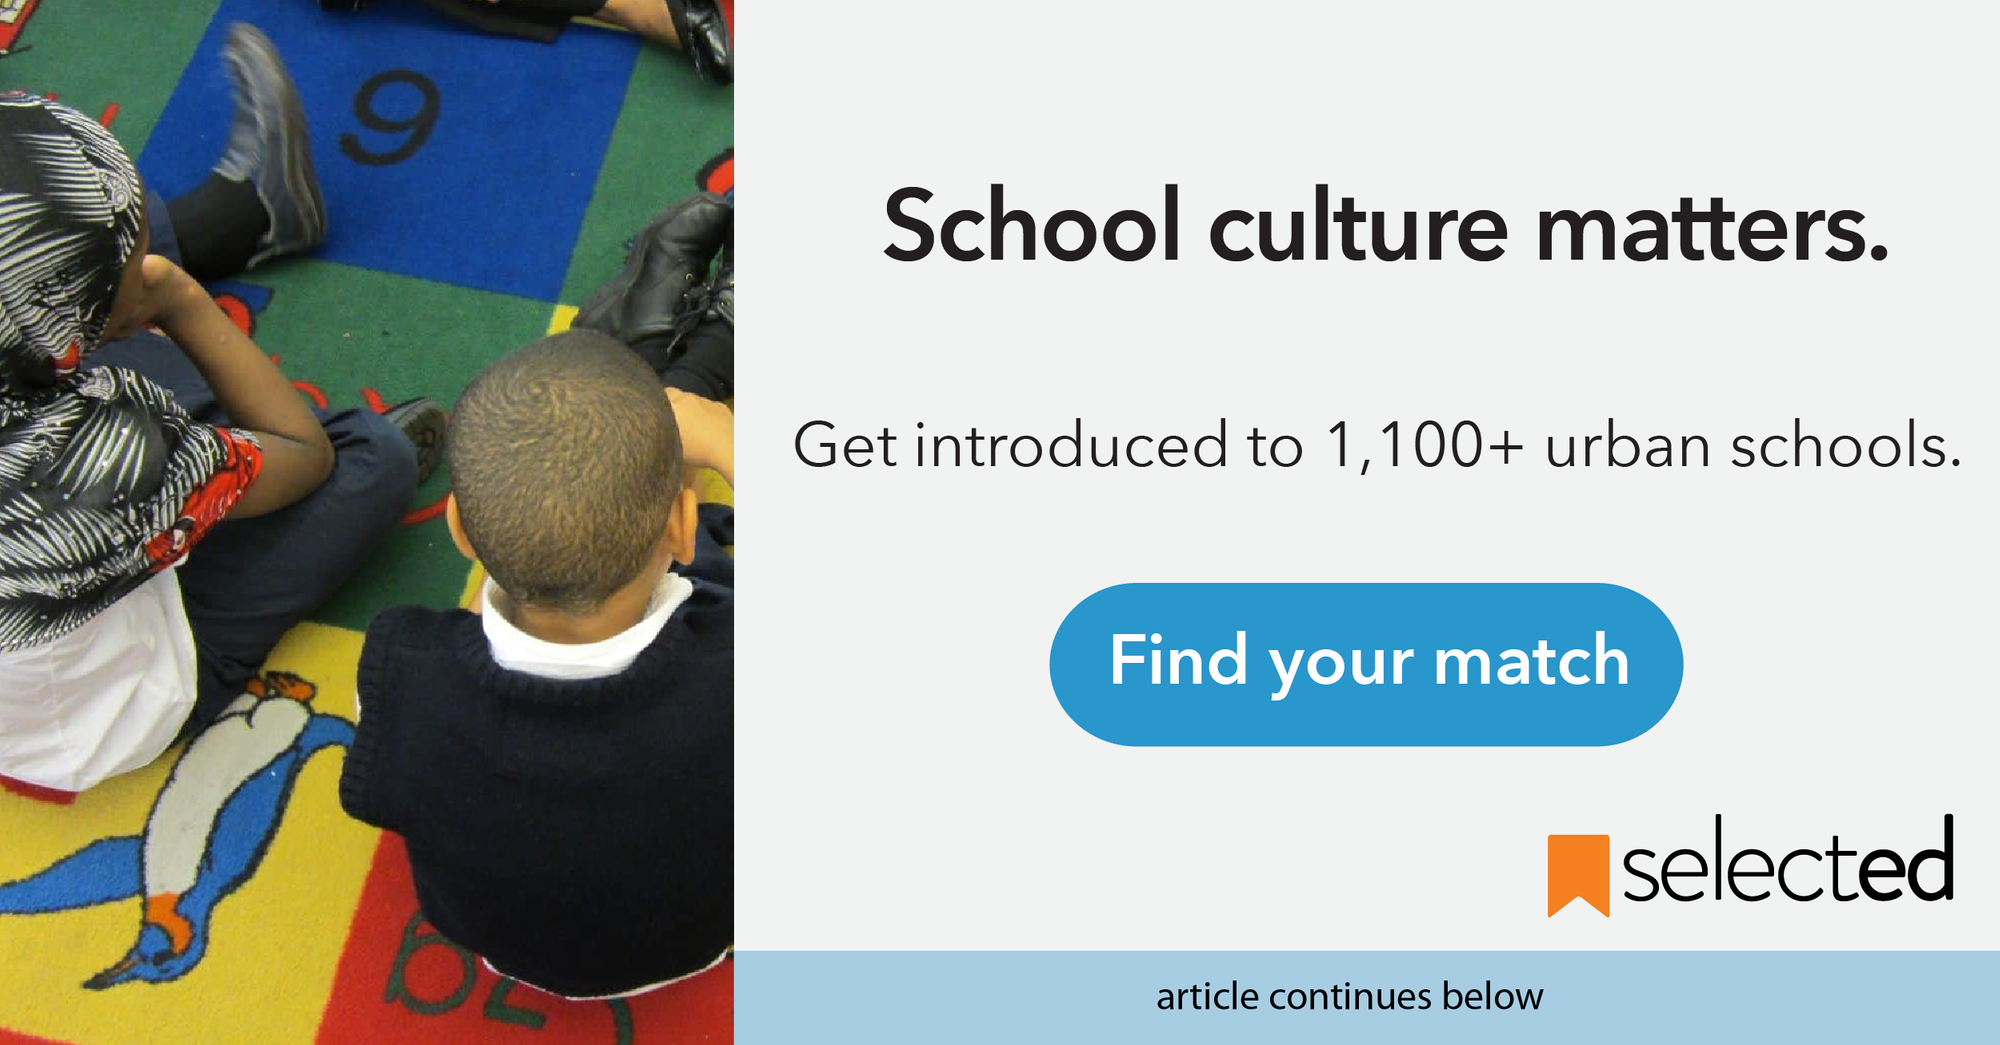 ghost-teacher-culture-ad-article-continues-blue-2